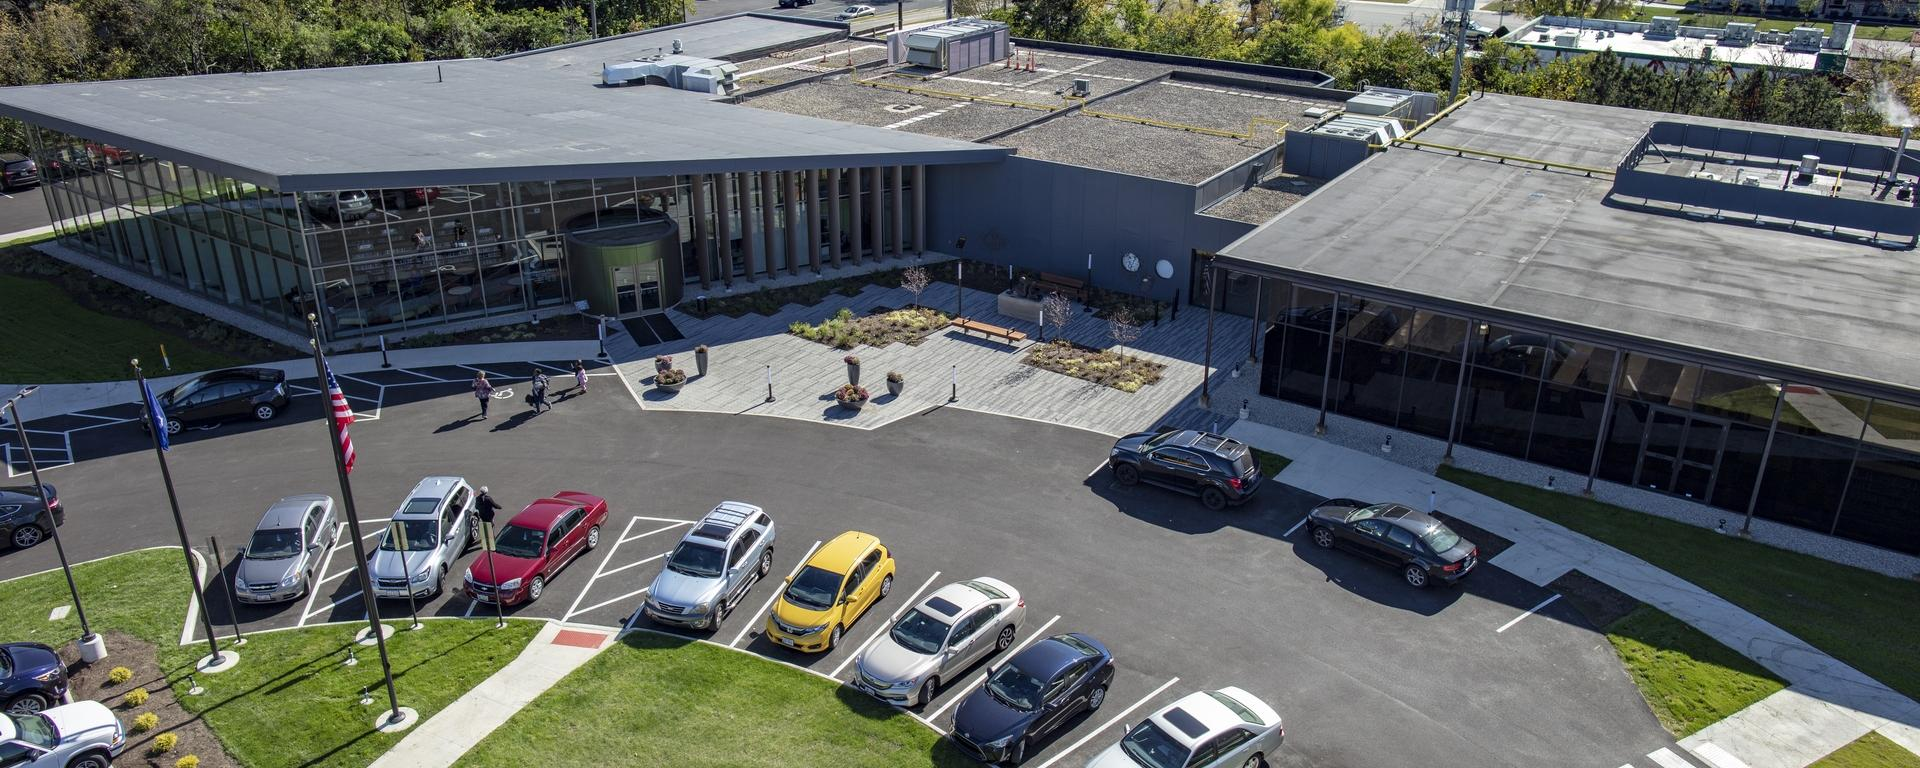 Another angle aerial view of Woodbourne Library